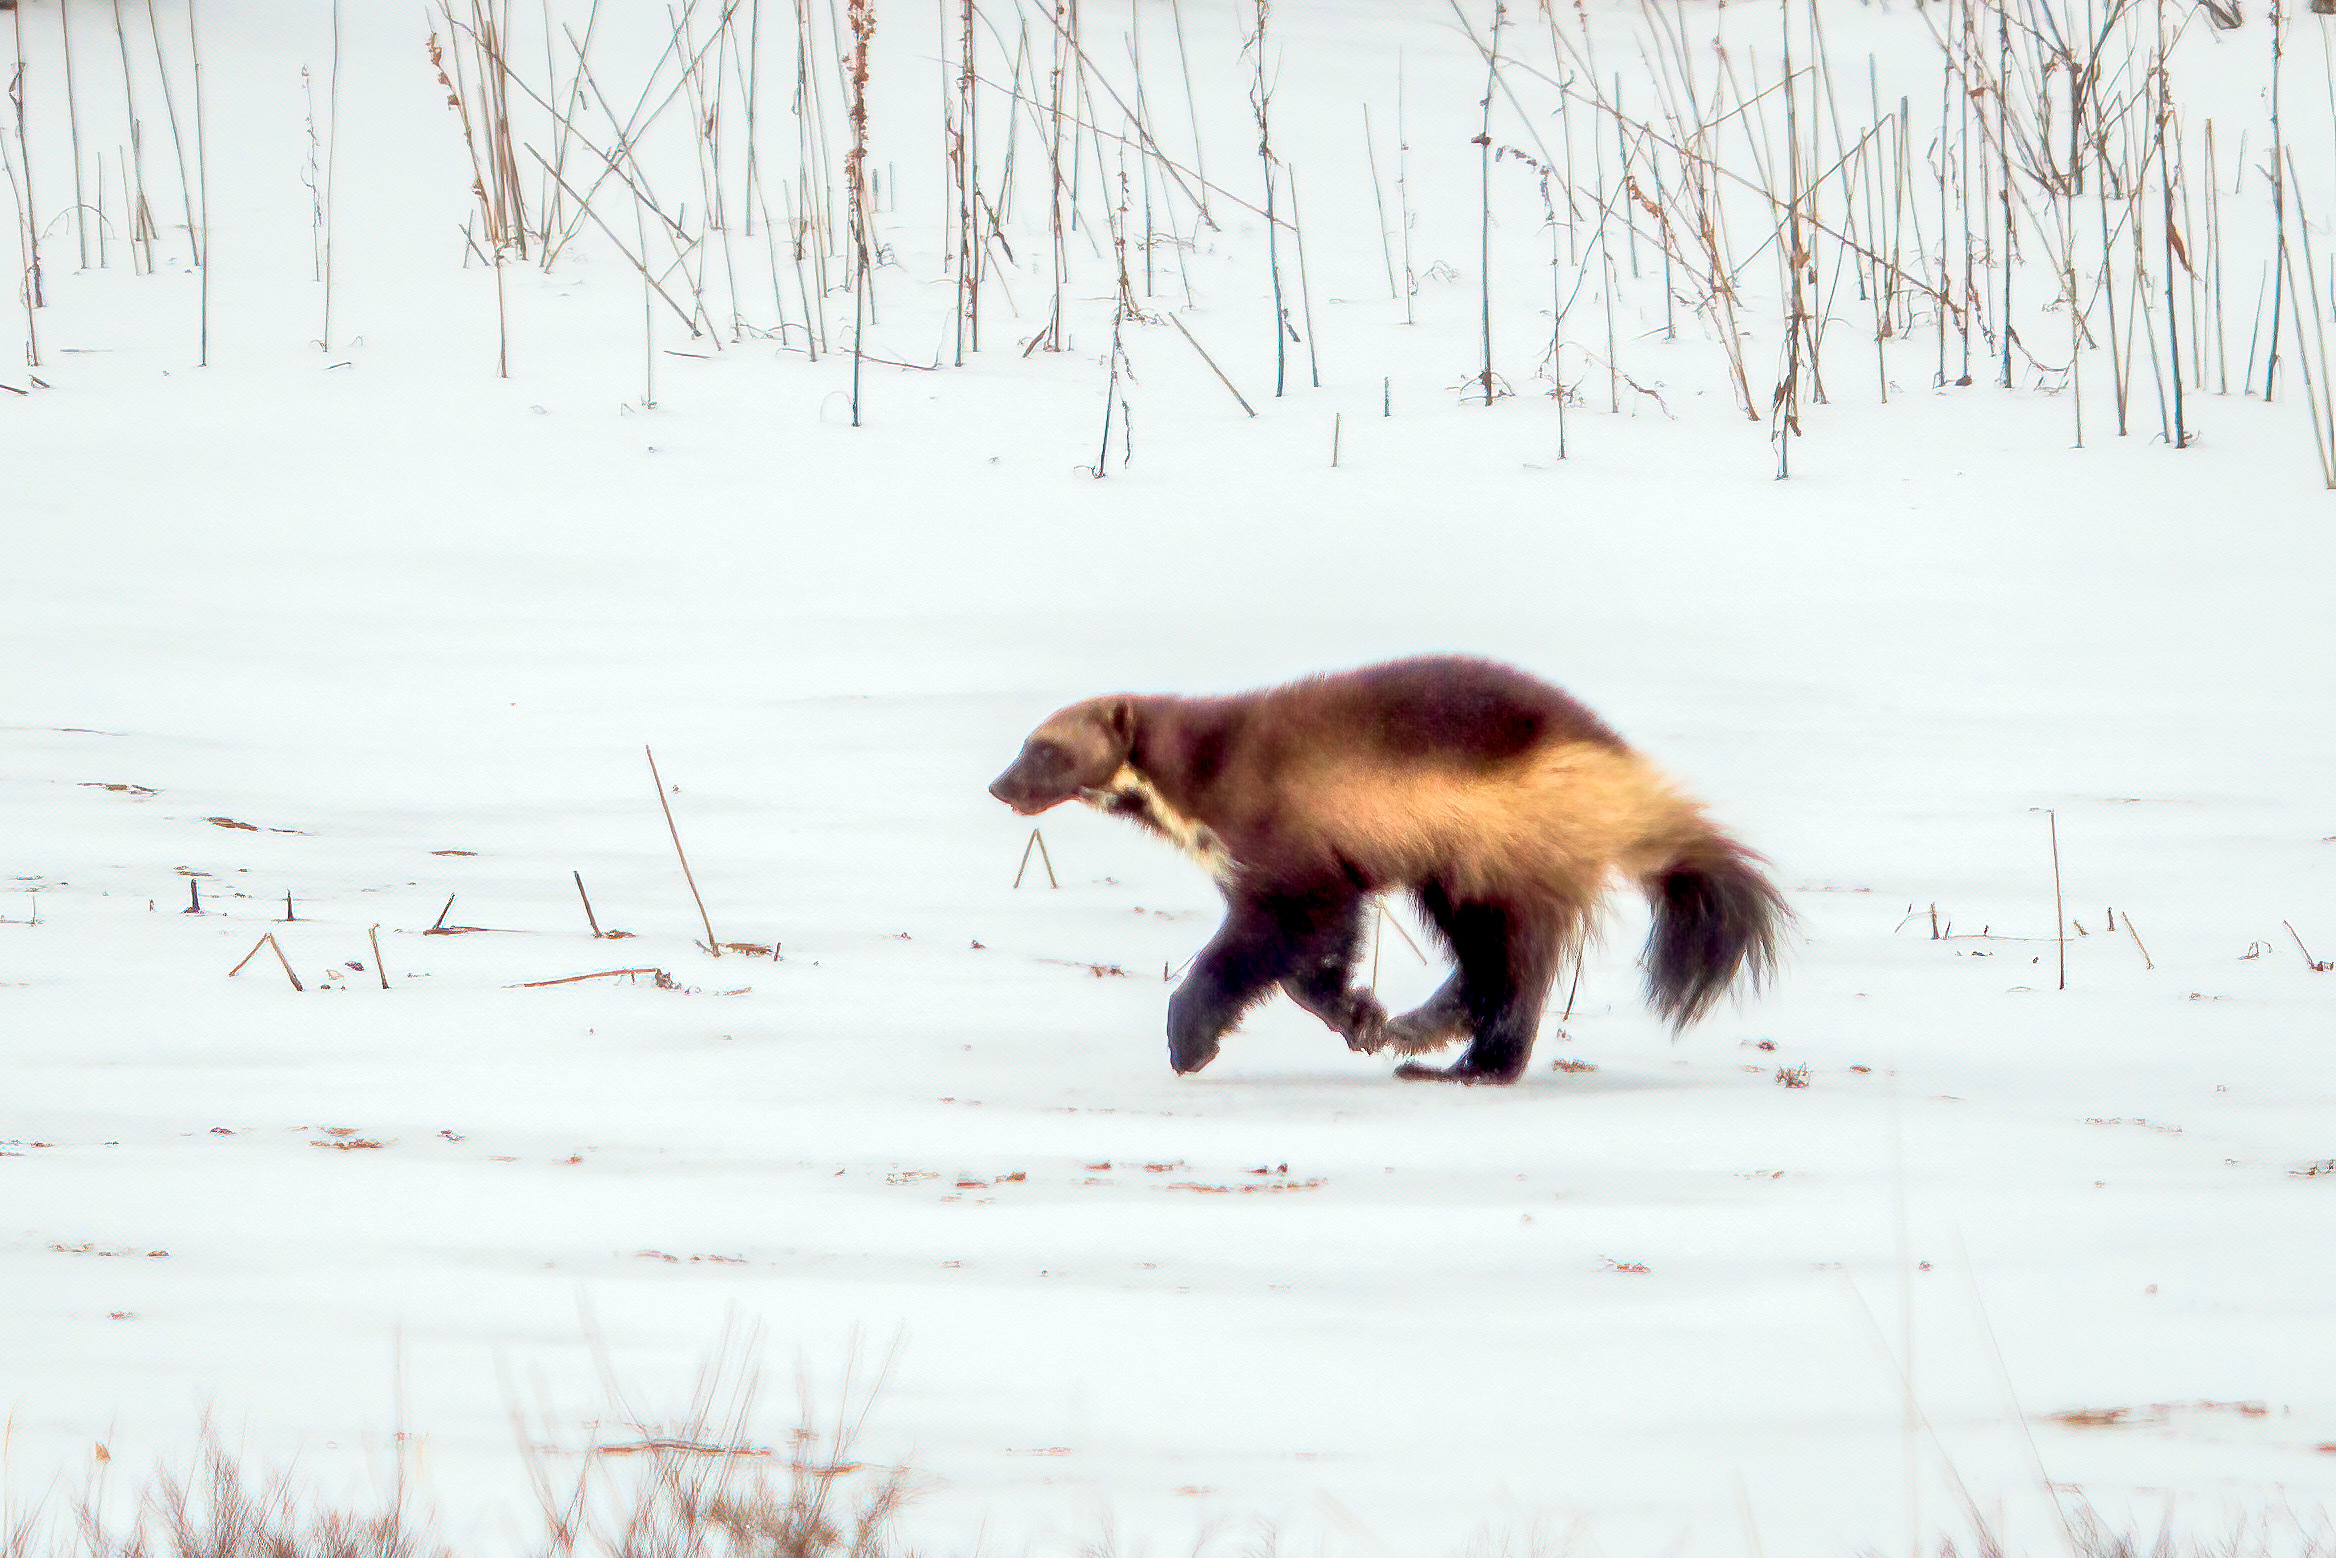 A rare sighting of a wolverine in Churchill, Manitoba.